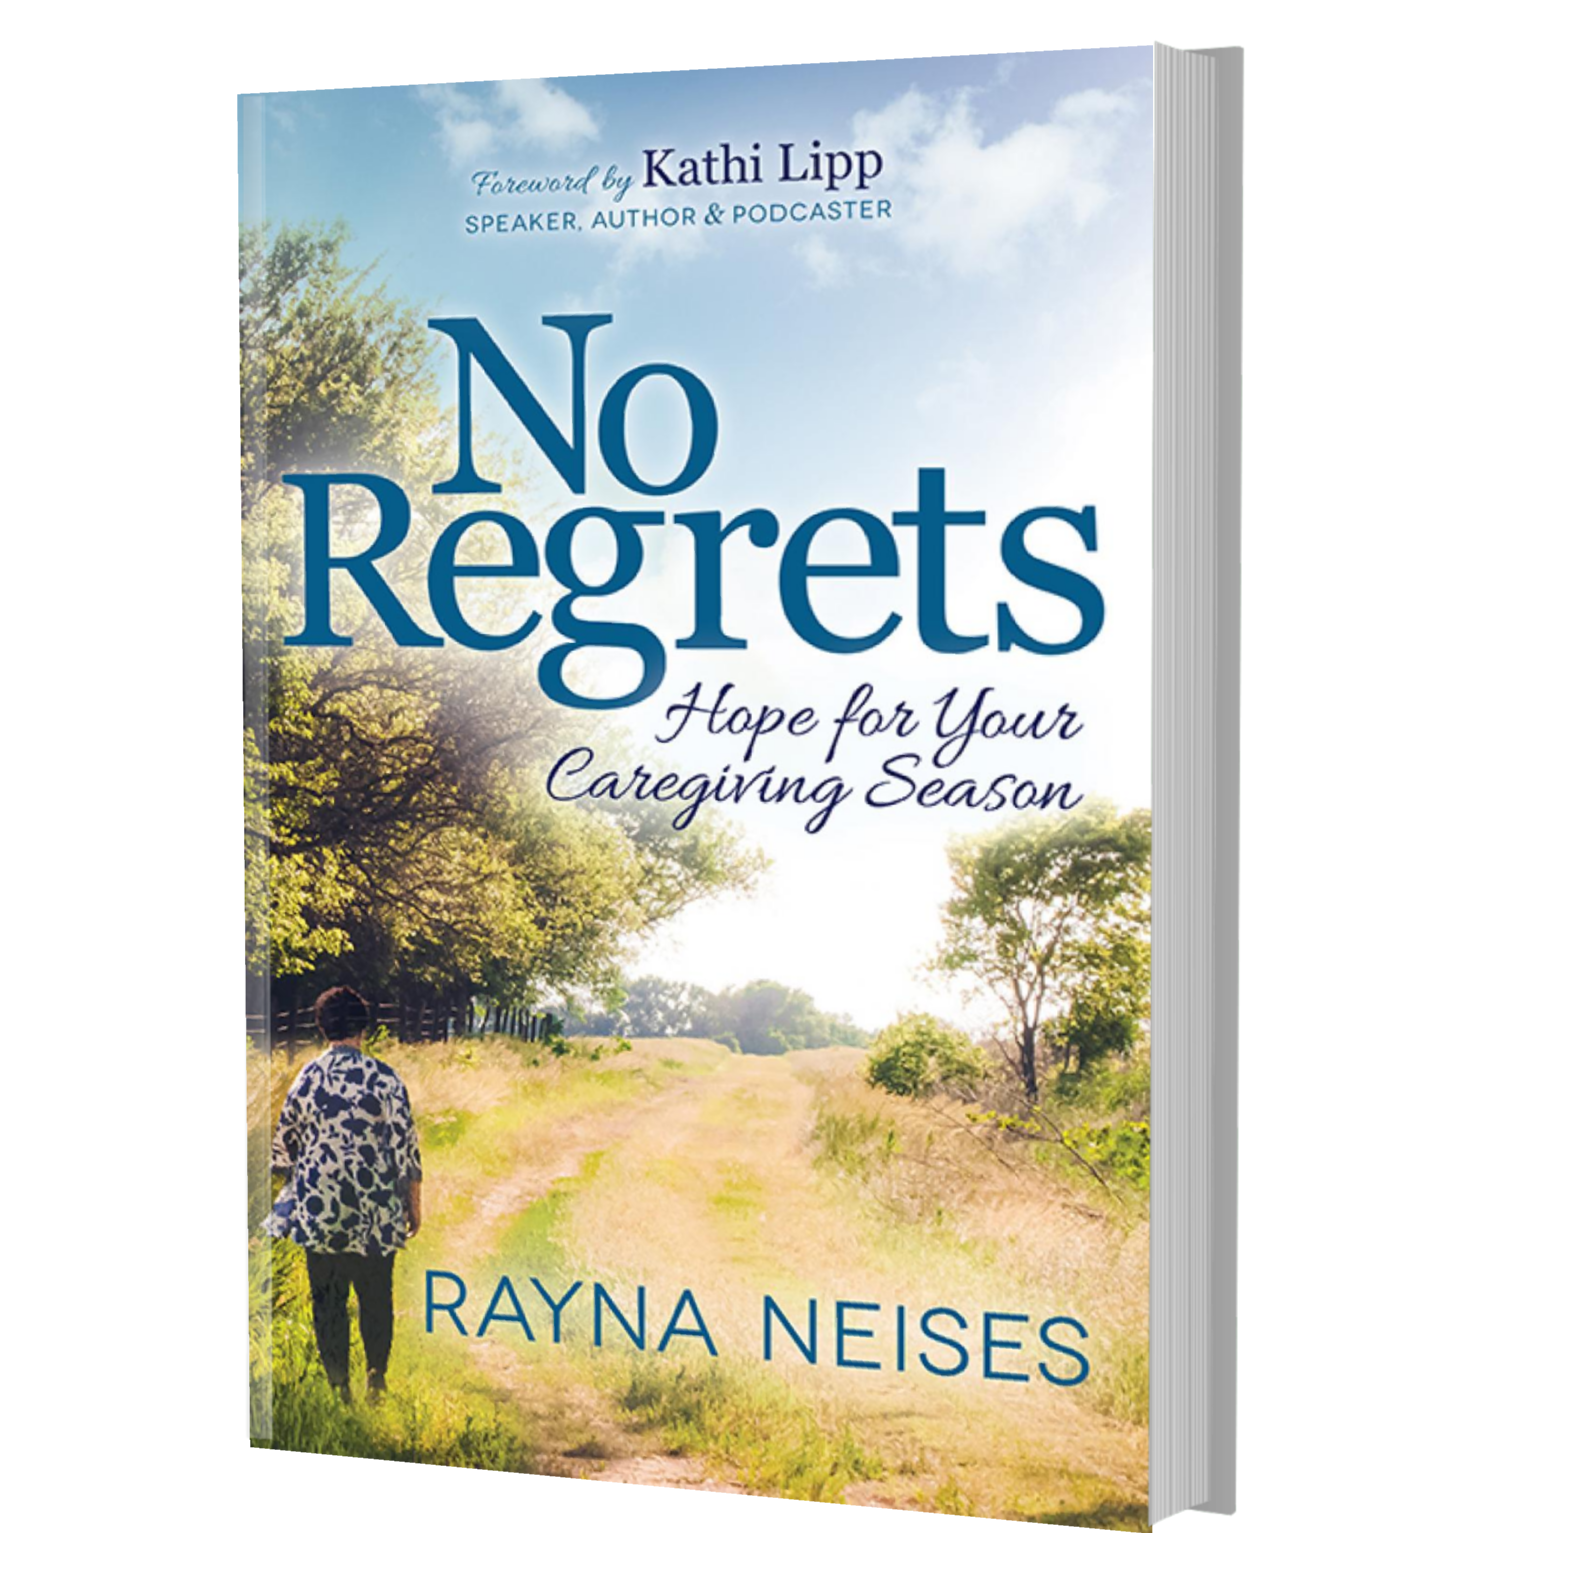 No Regrets Hope for Your Caregiving Season